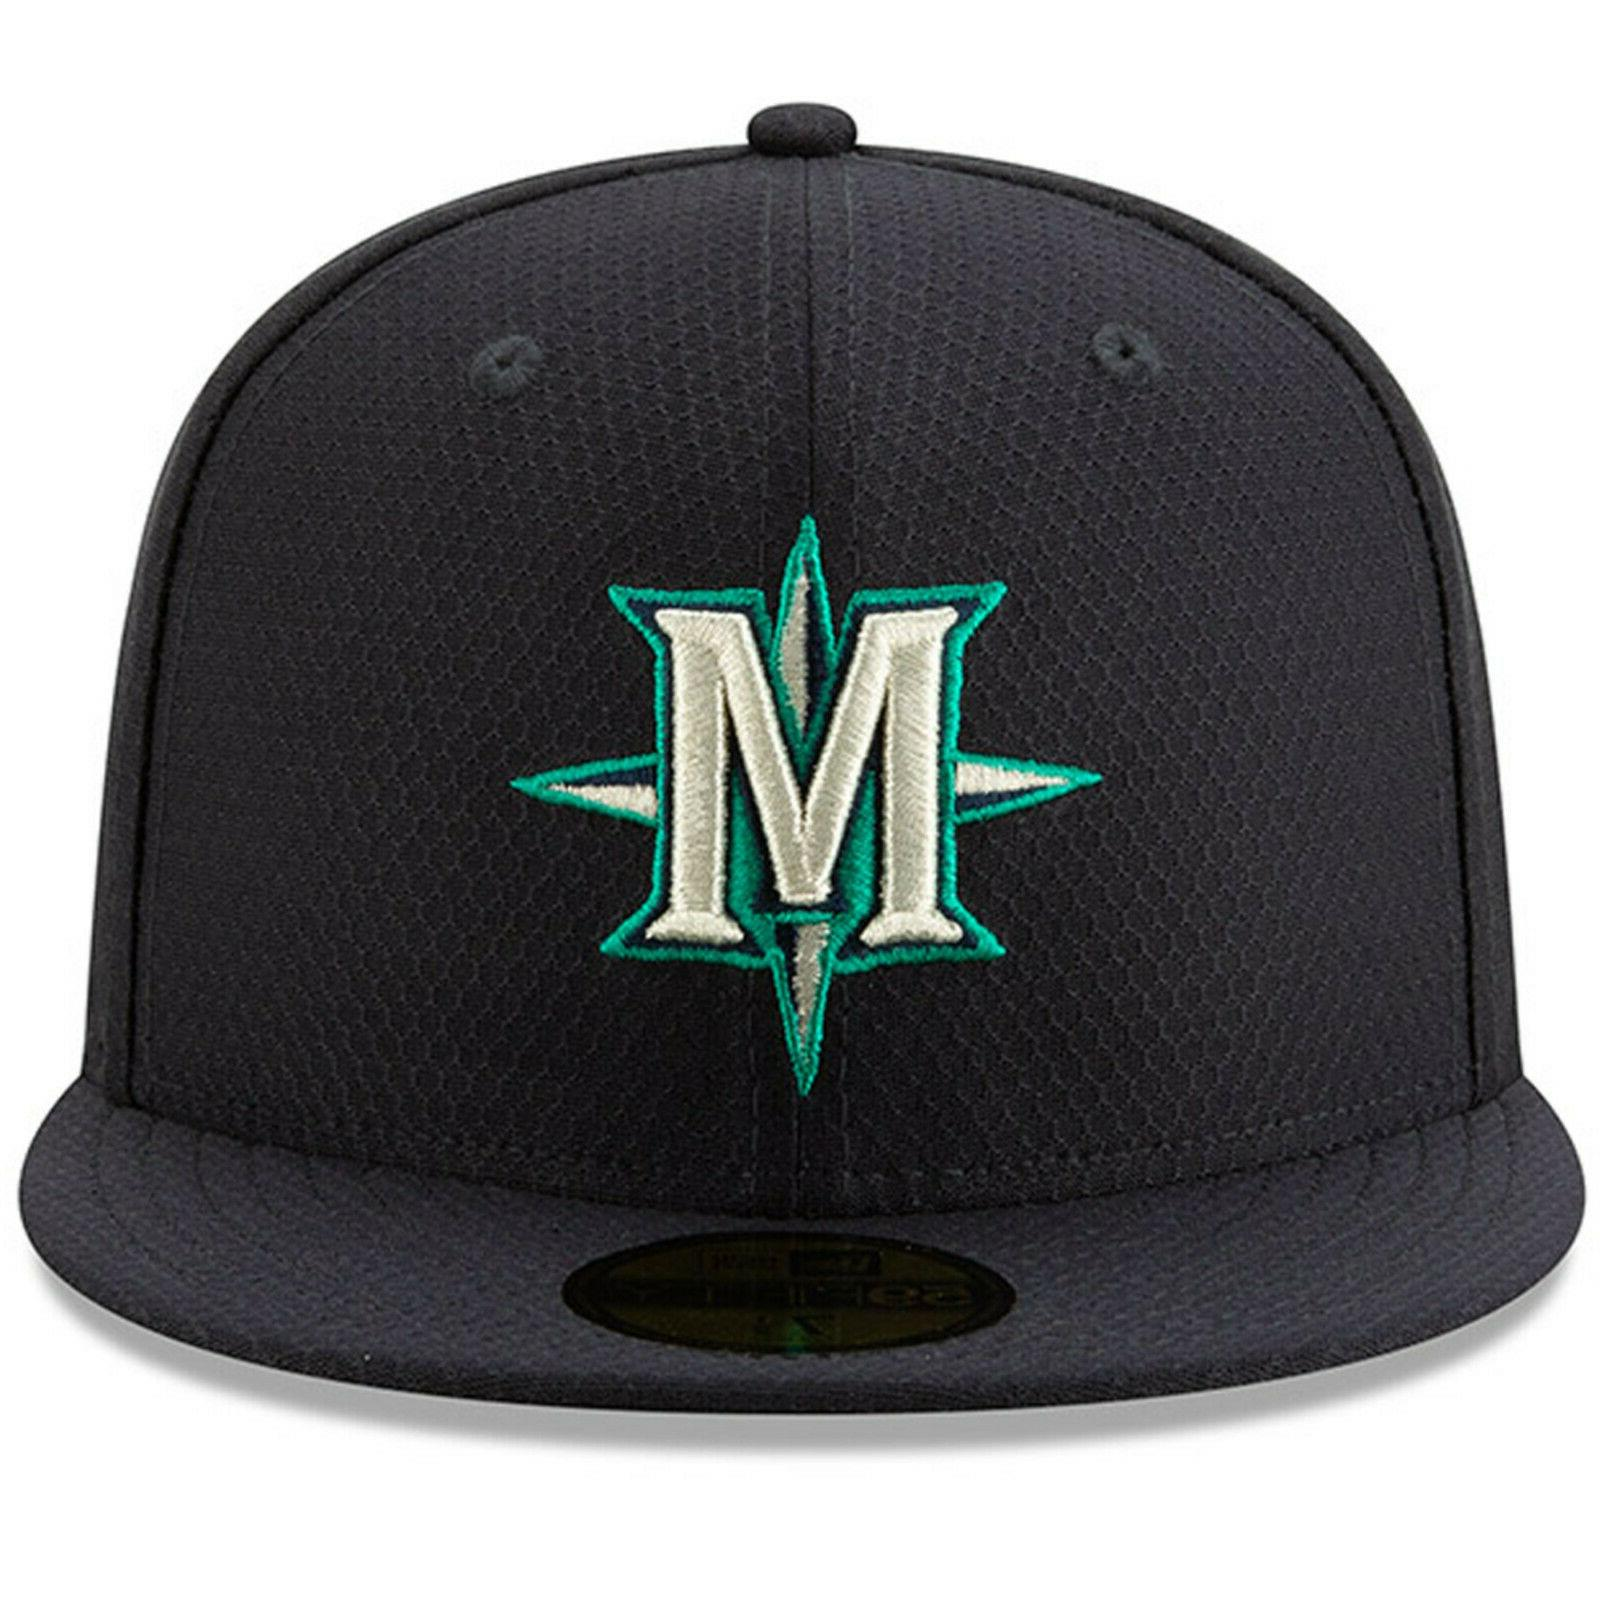 Seattle Mariners New 2019 On-Field 59FIFTY Hat